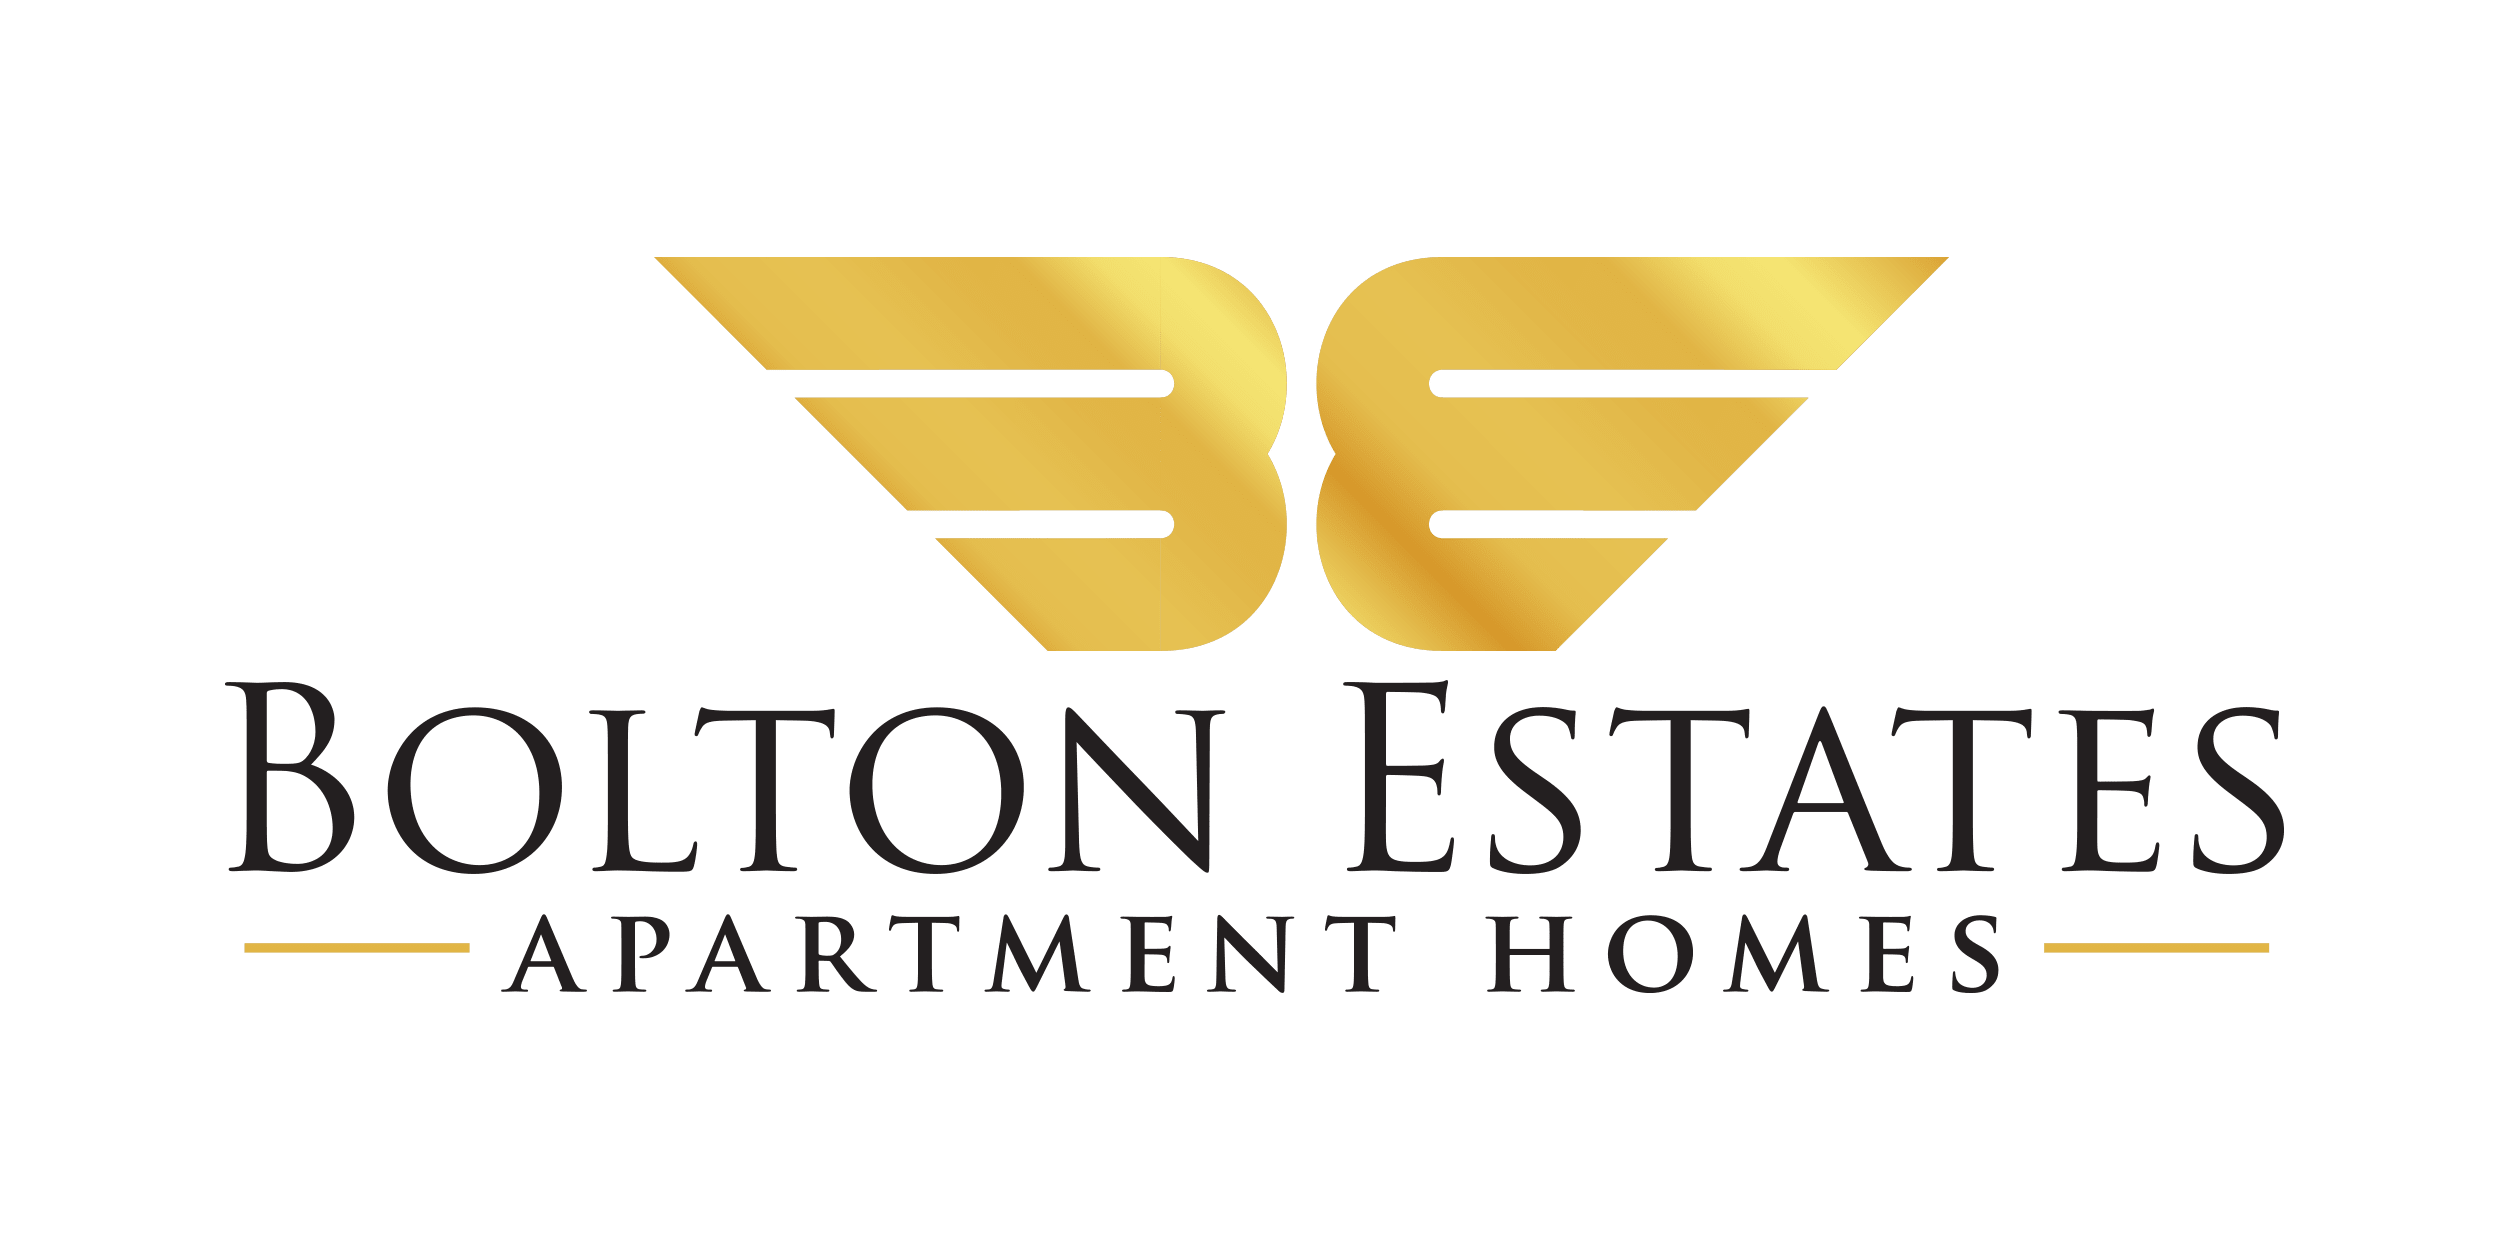 Bolton Estates Apartments